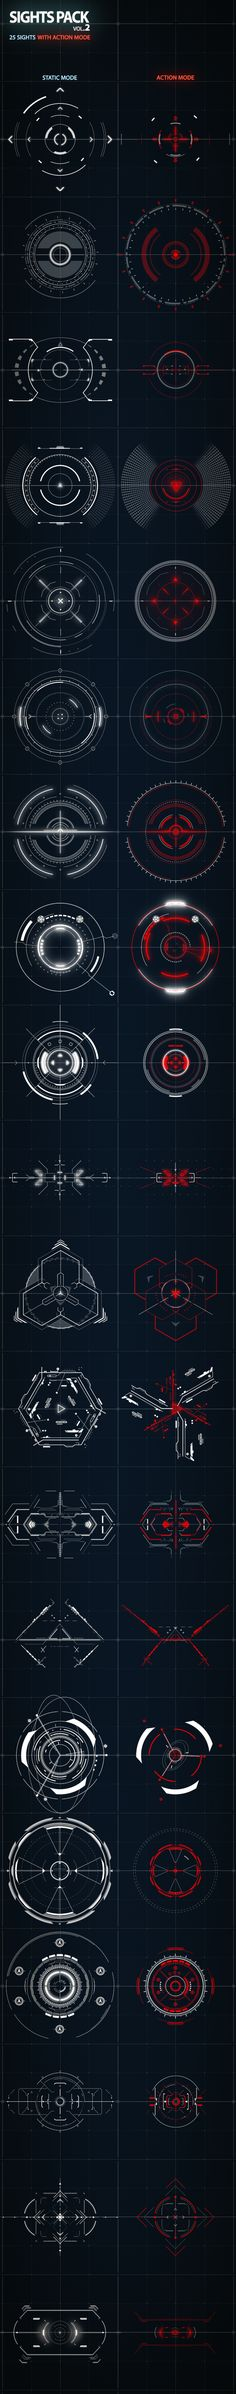 Drone Infographics : Tap the link for an awesome selection of drones and accessories Web Design, Game Design, Logo Design, Graphic Design, Gui Interface, User Interface Design, Photoshop, Motion Design, Futuristic